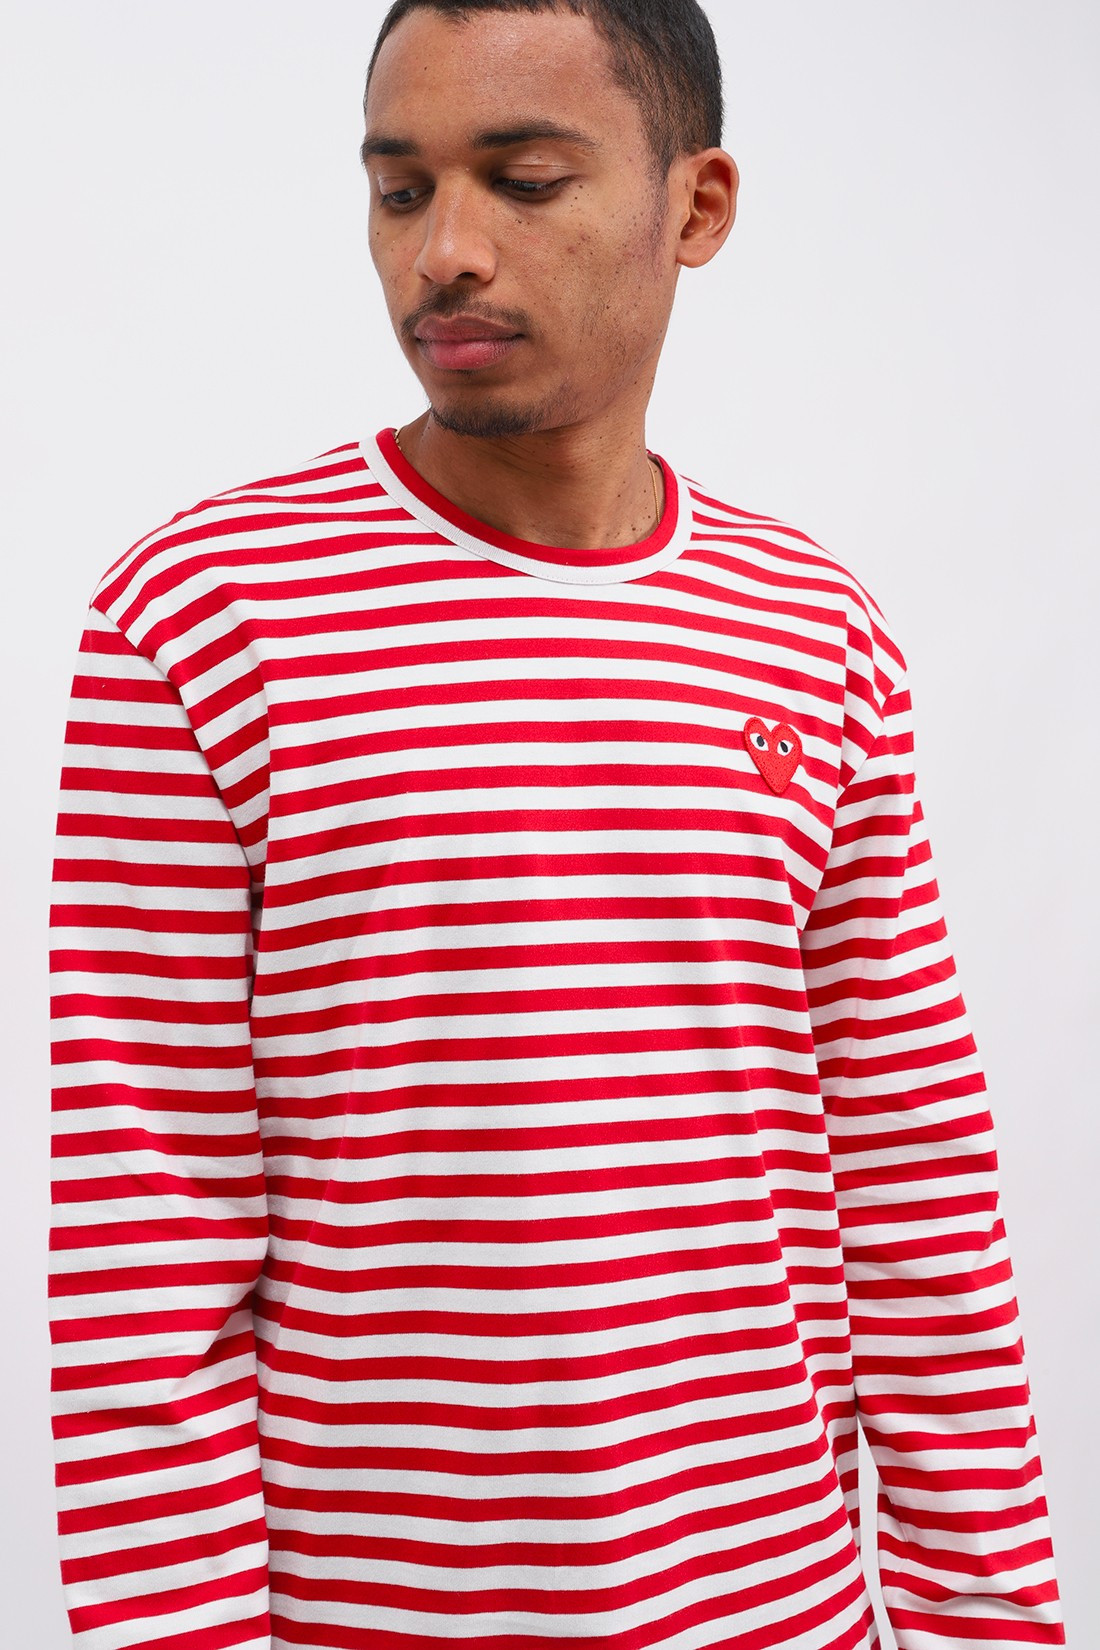 COMME DES GARÇONS PLAY / Play striped t-shirt Red white